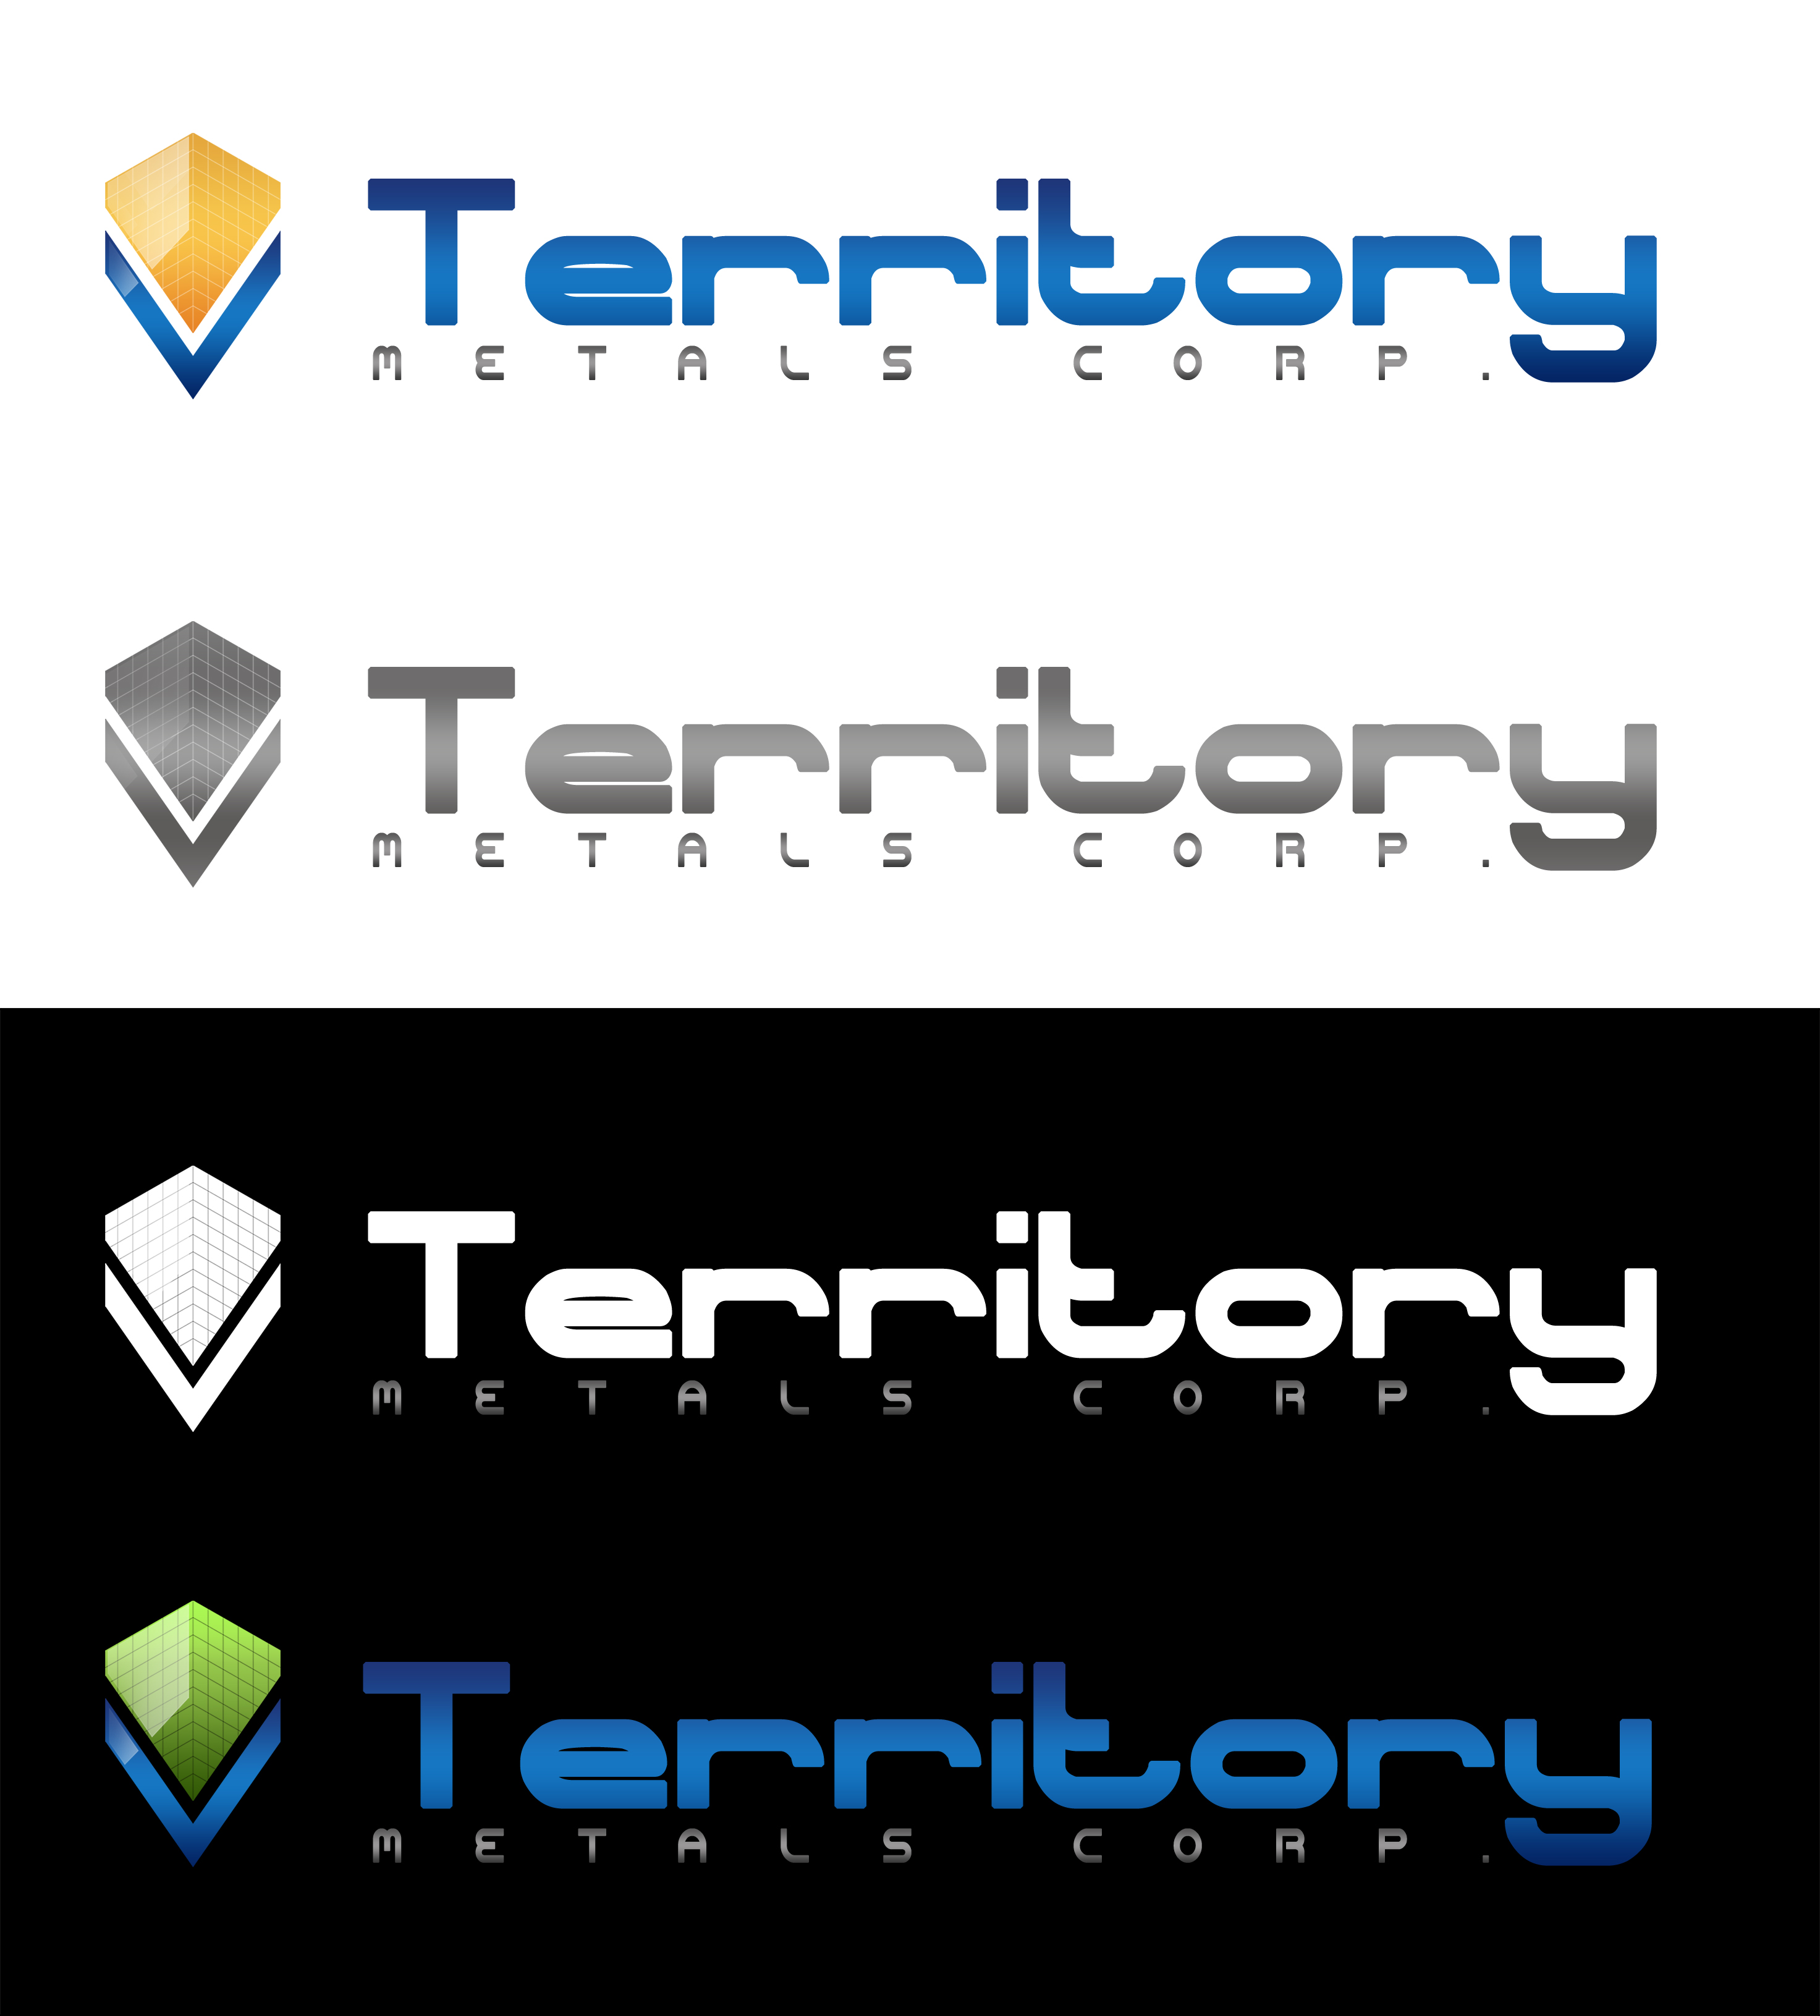 Logo Design by JSDESIGNGROUP - Entry No. 238 in the Logo Design Contest Unique Logo Design Wanted for Territory Metals Corp..